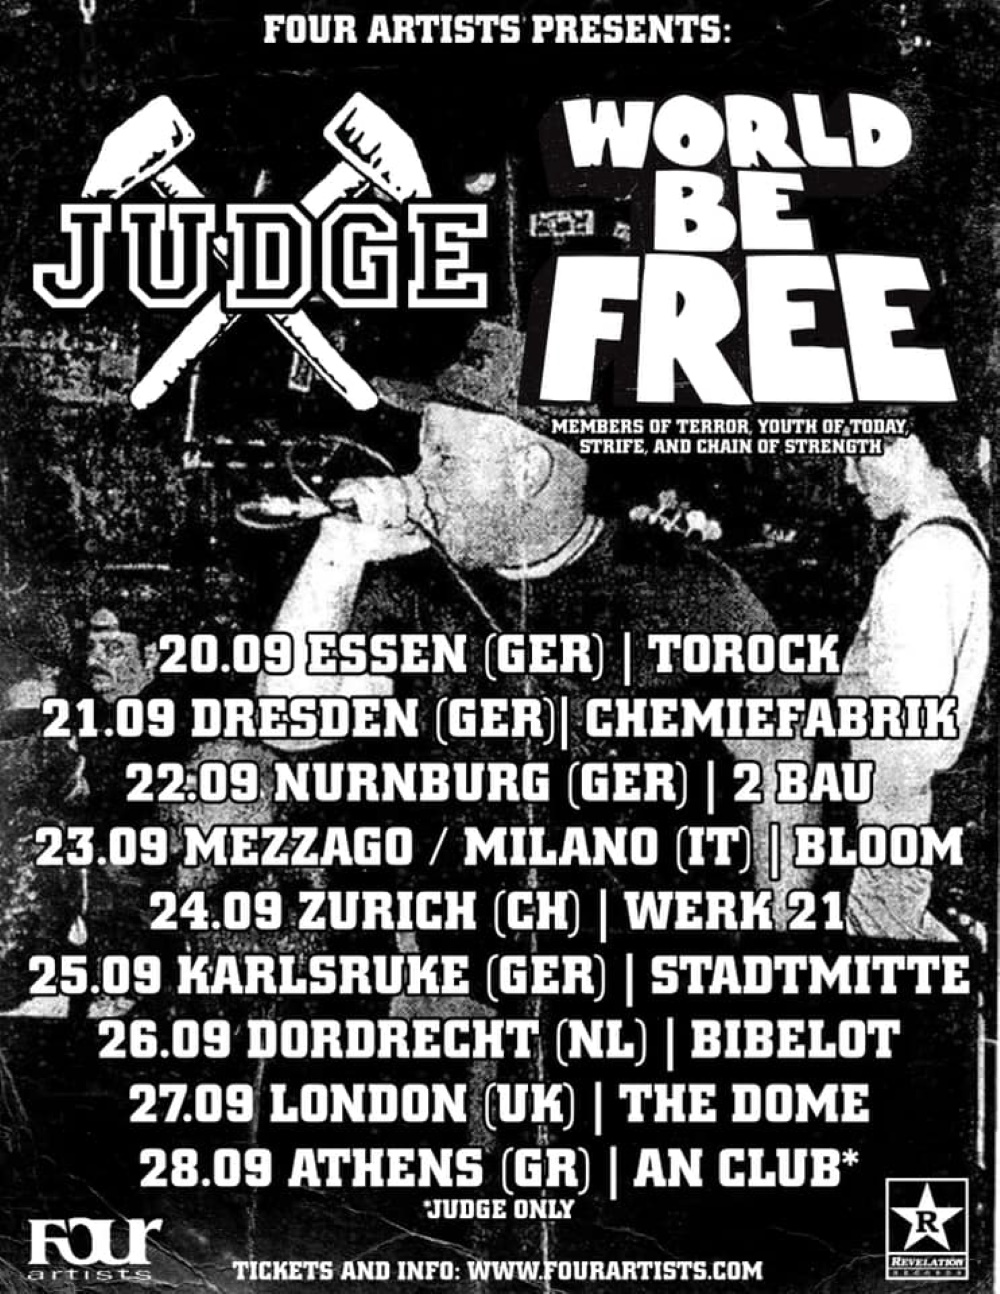 JUDGE and WORLD BE FREE European tour dates